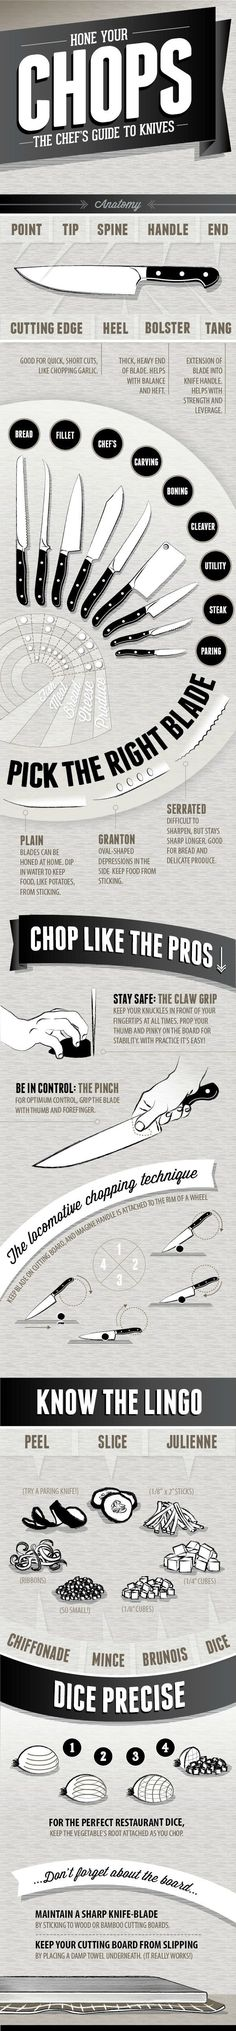 Not a recipe, but just some useful tips for using kitchen knives. This is an awesome little guide!